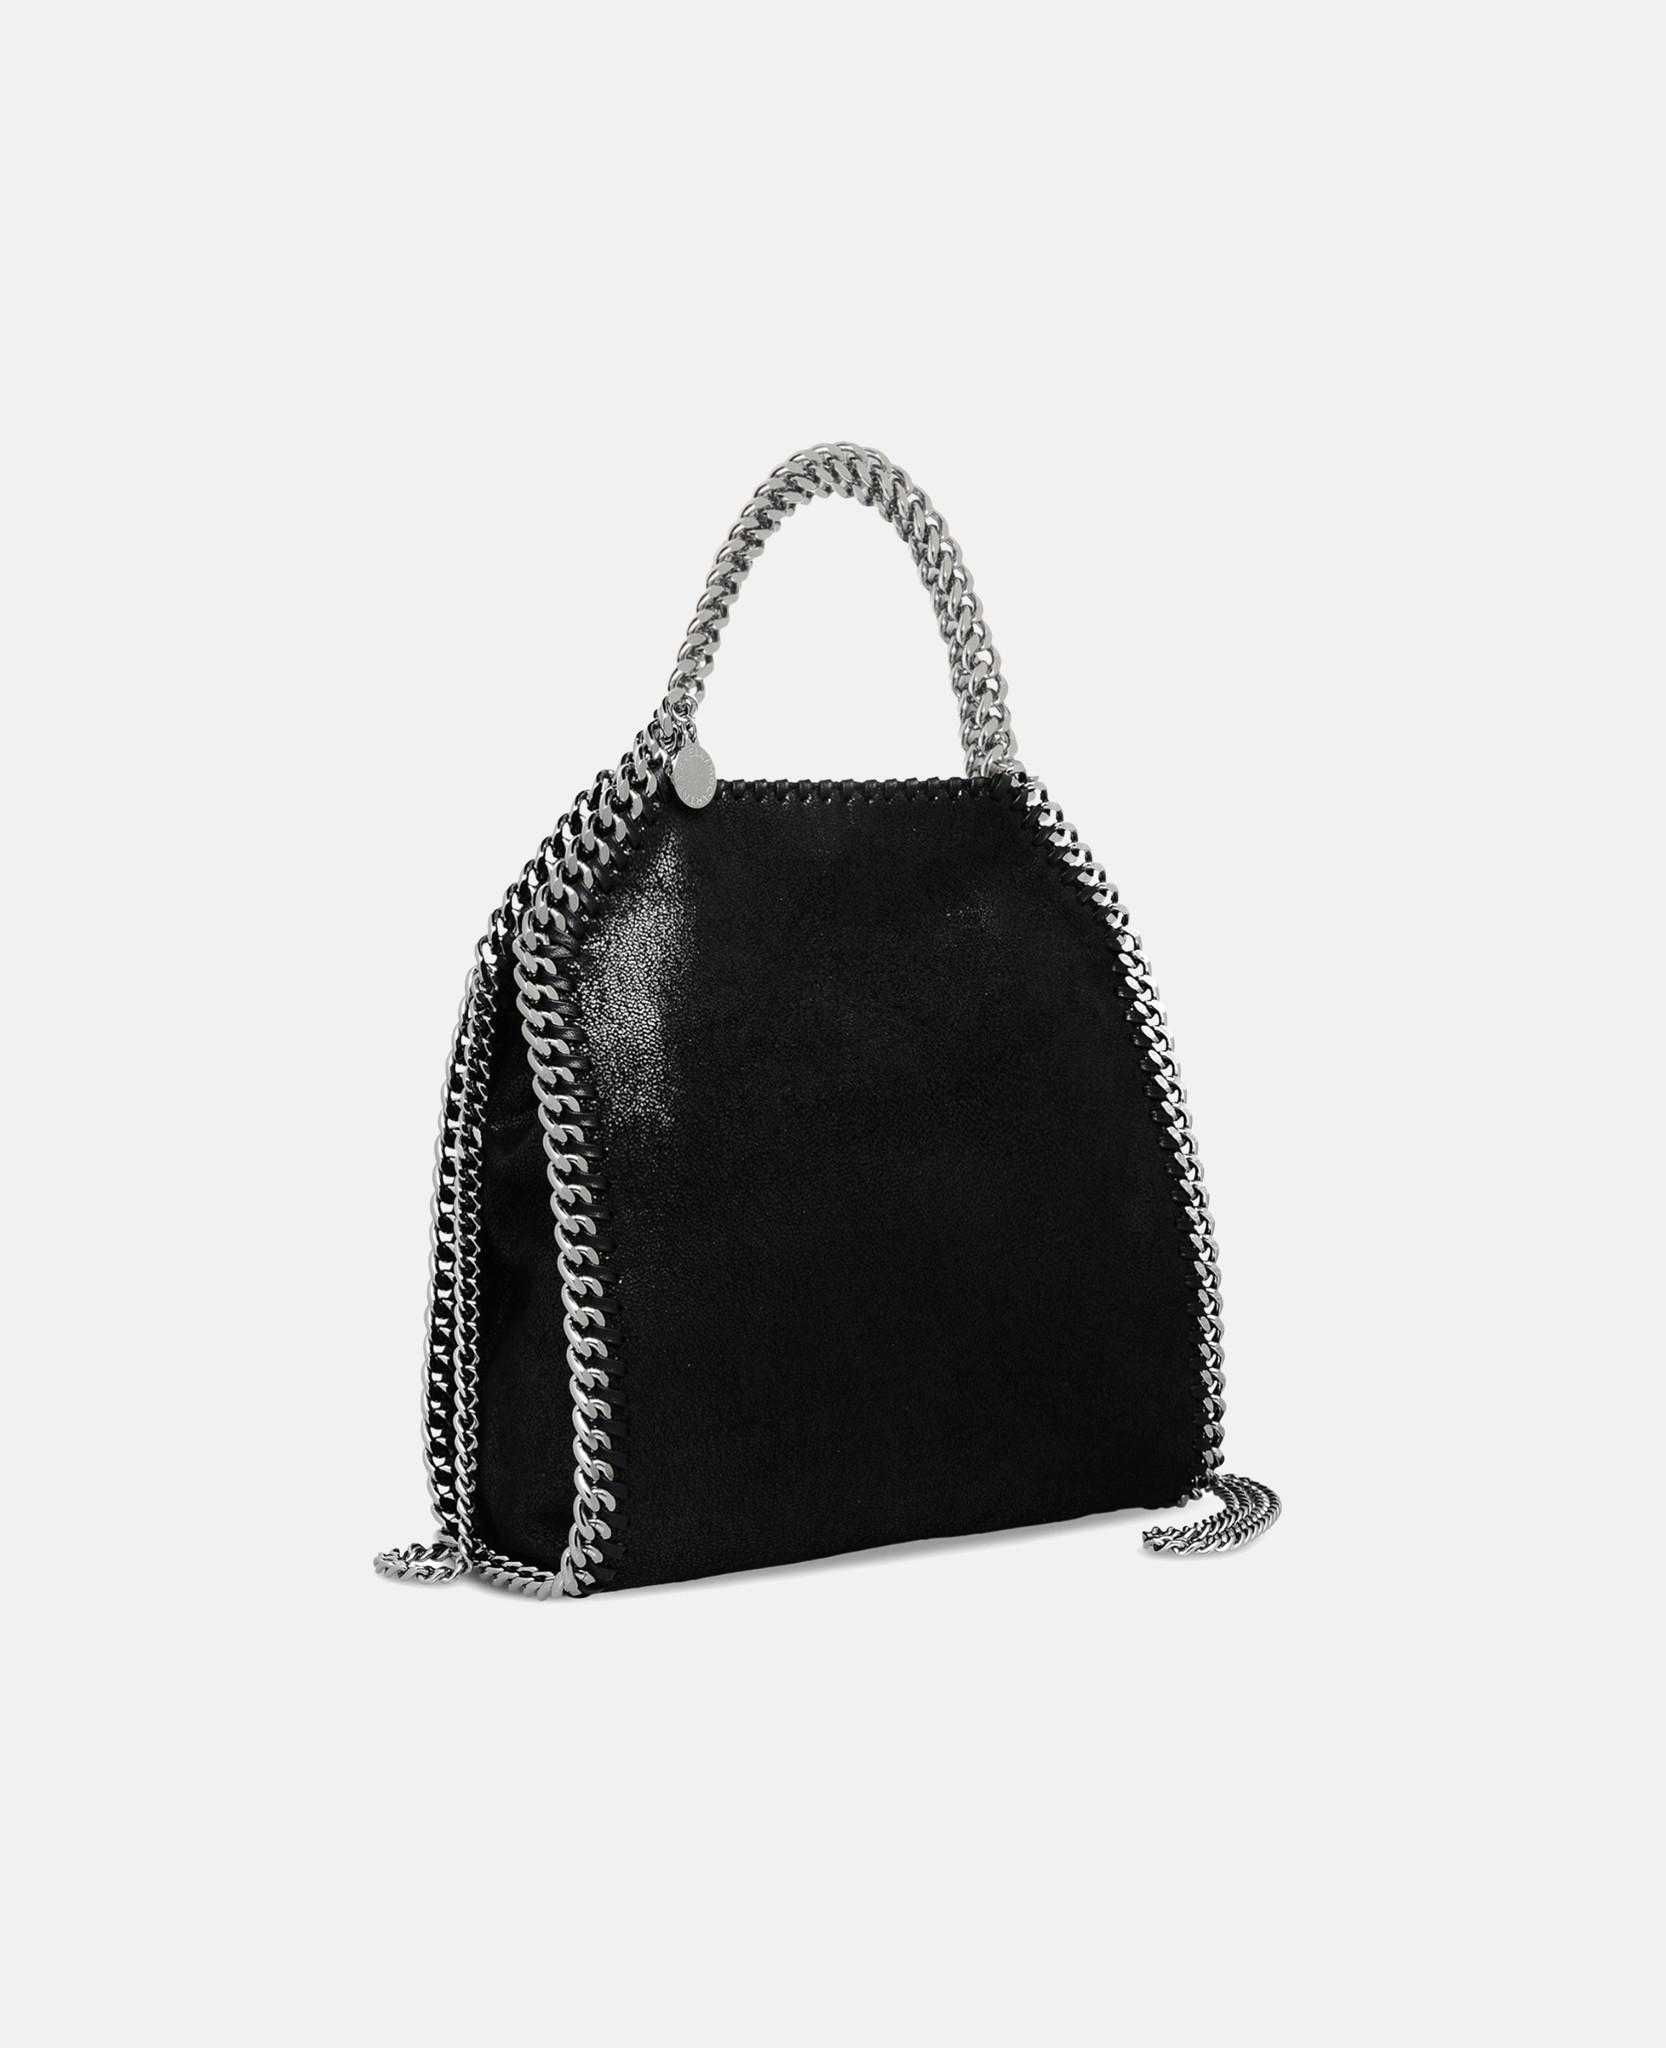 6e632f1d326 Stella McCartney Falabella Shaggy Deer Mini Tote in Black - Lyst